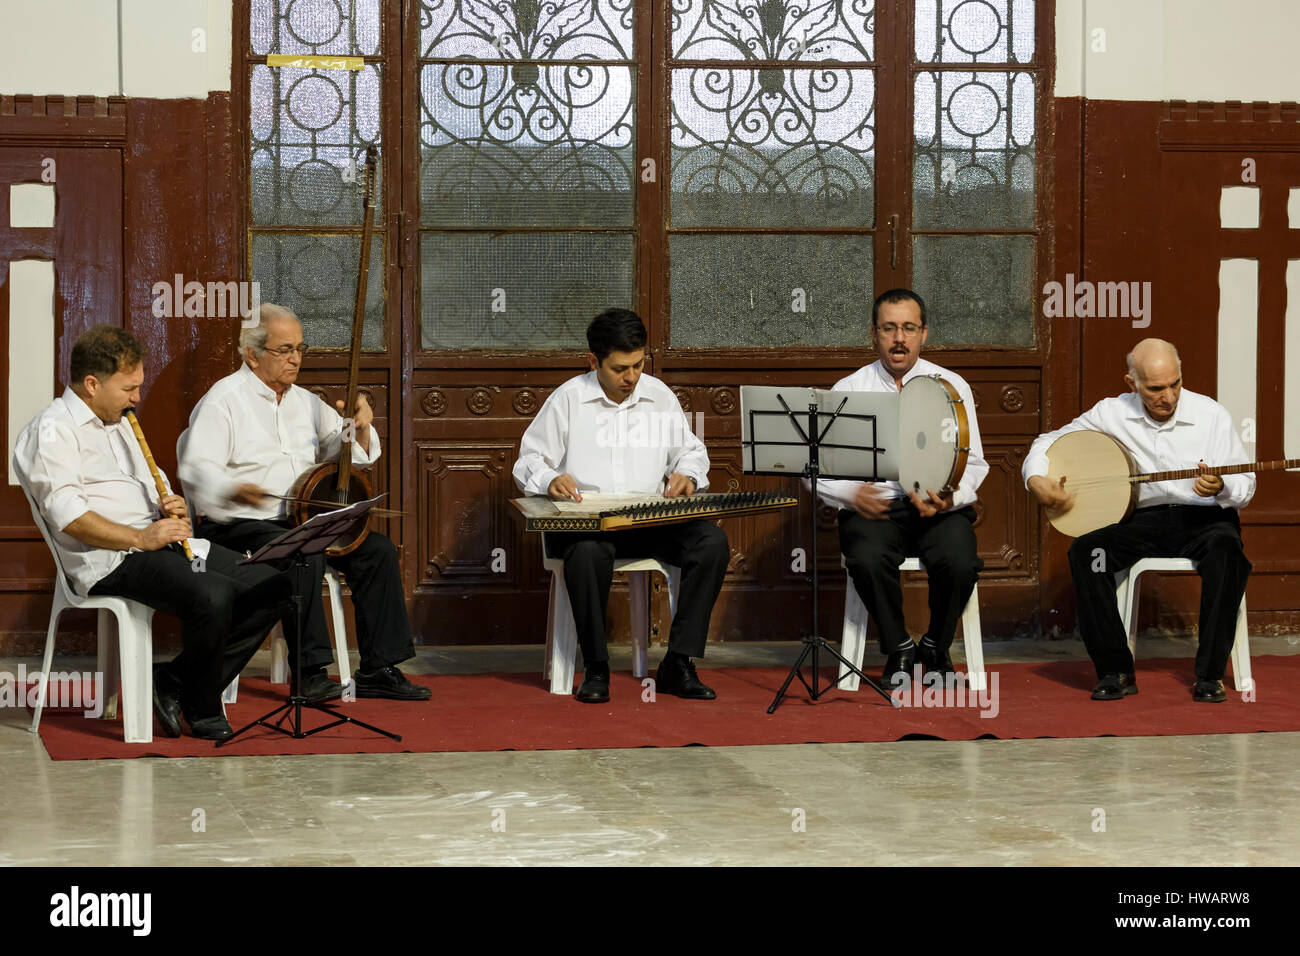 Band of musicians, whirling dervishes ceremony, Sirkeci Train Station, Istanbul, Turkey - Stock Image